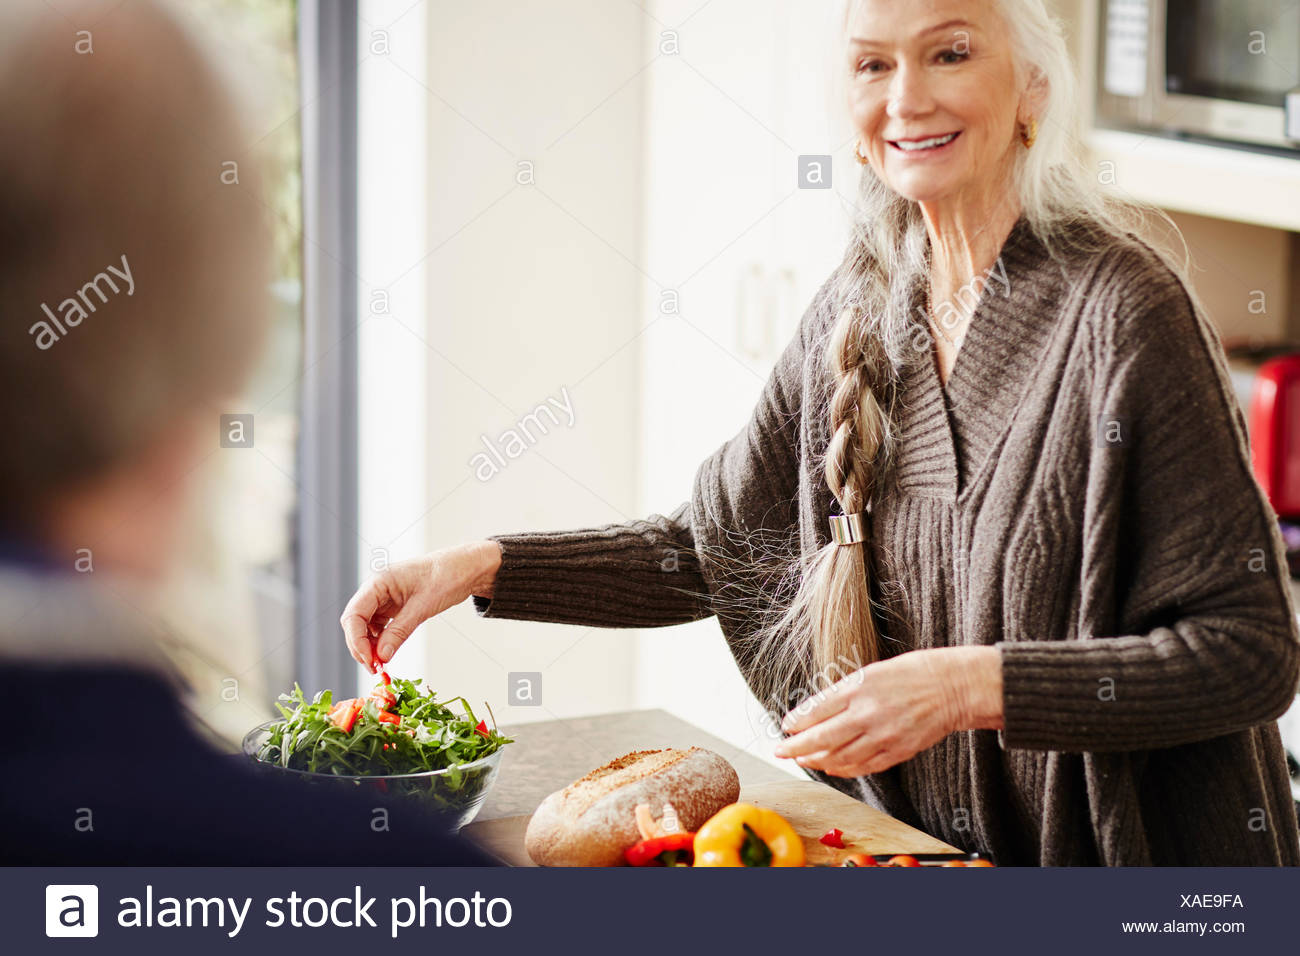 Senior woman preparing food in kitchen - Stock Image